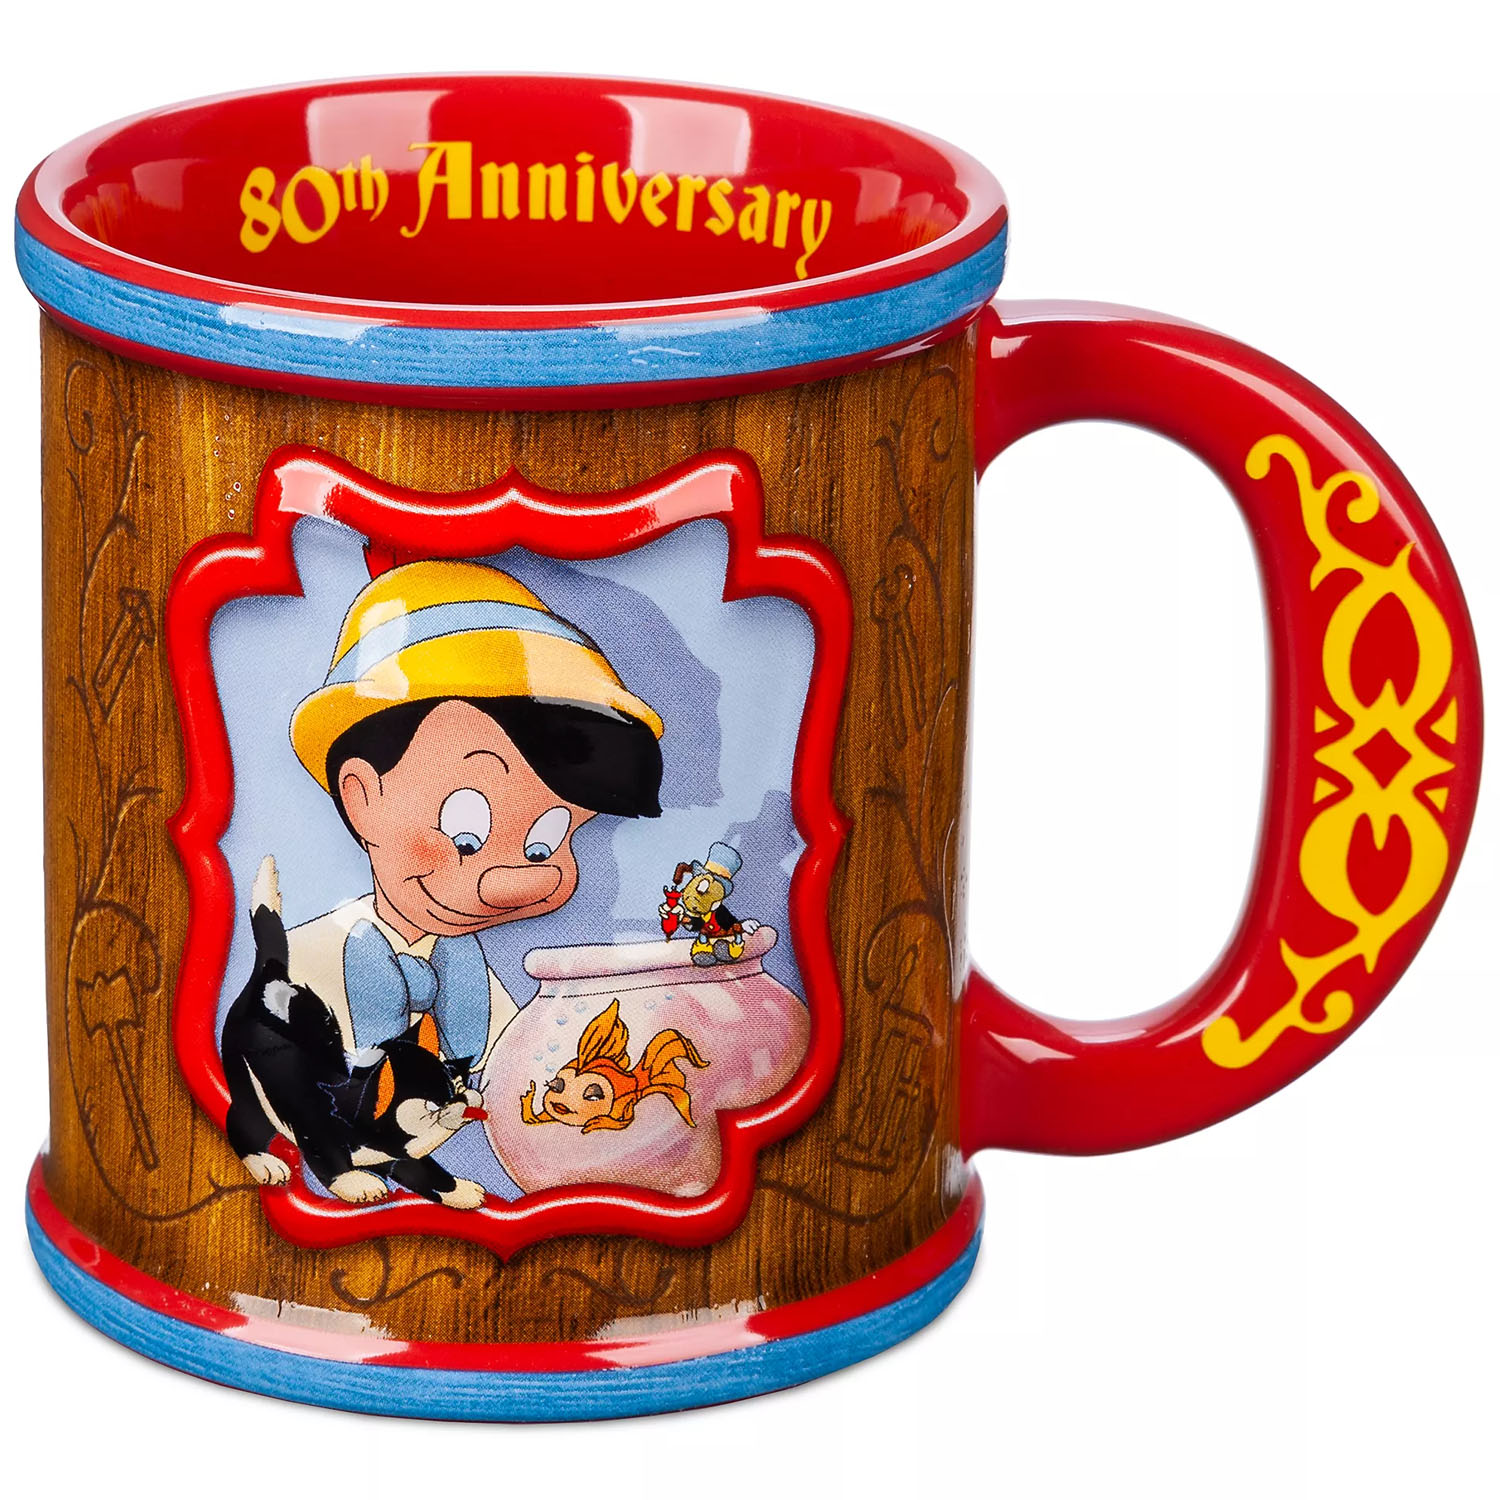 Disney Pinocchio 80th Anniversary Mug Disney Store Exclusive